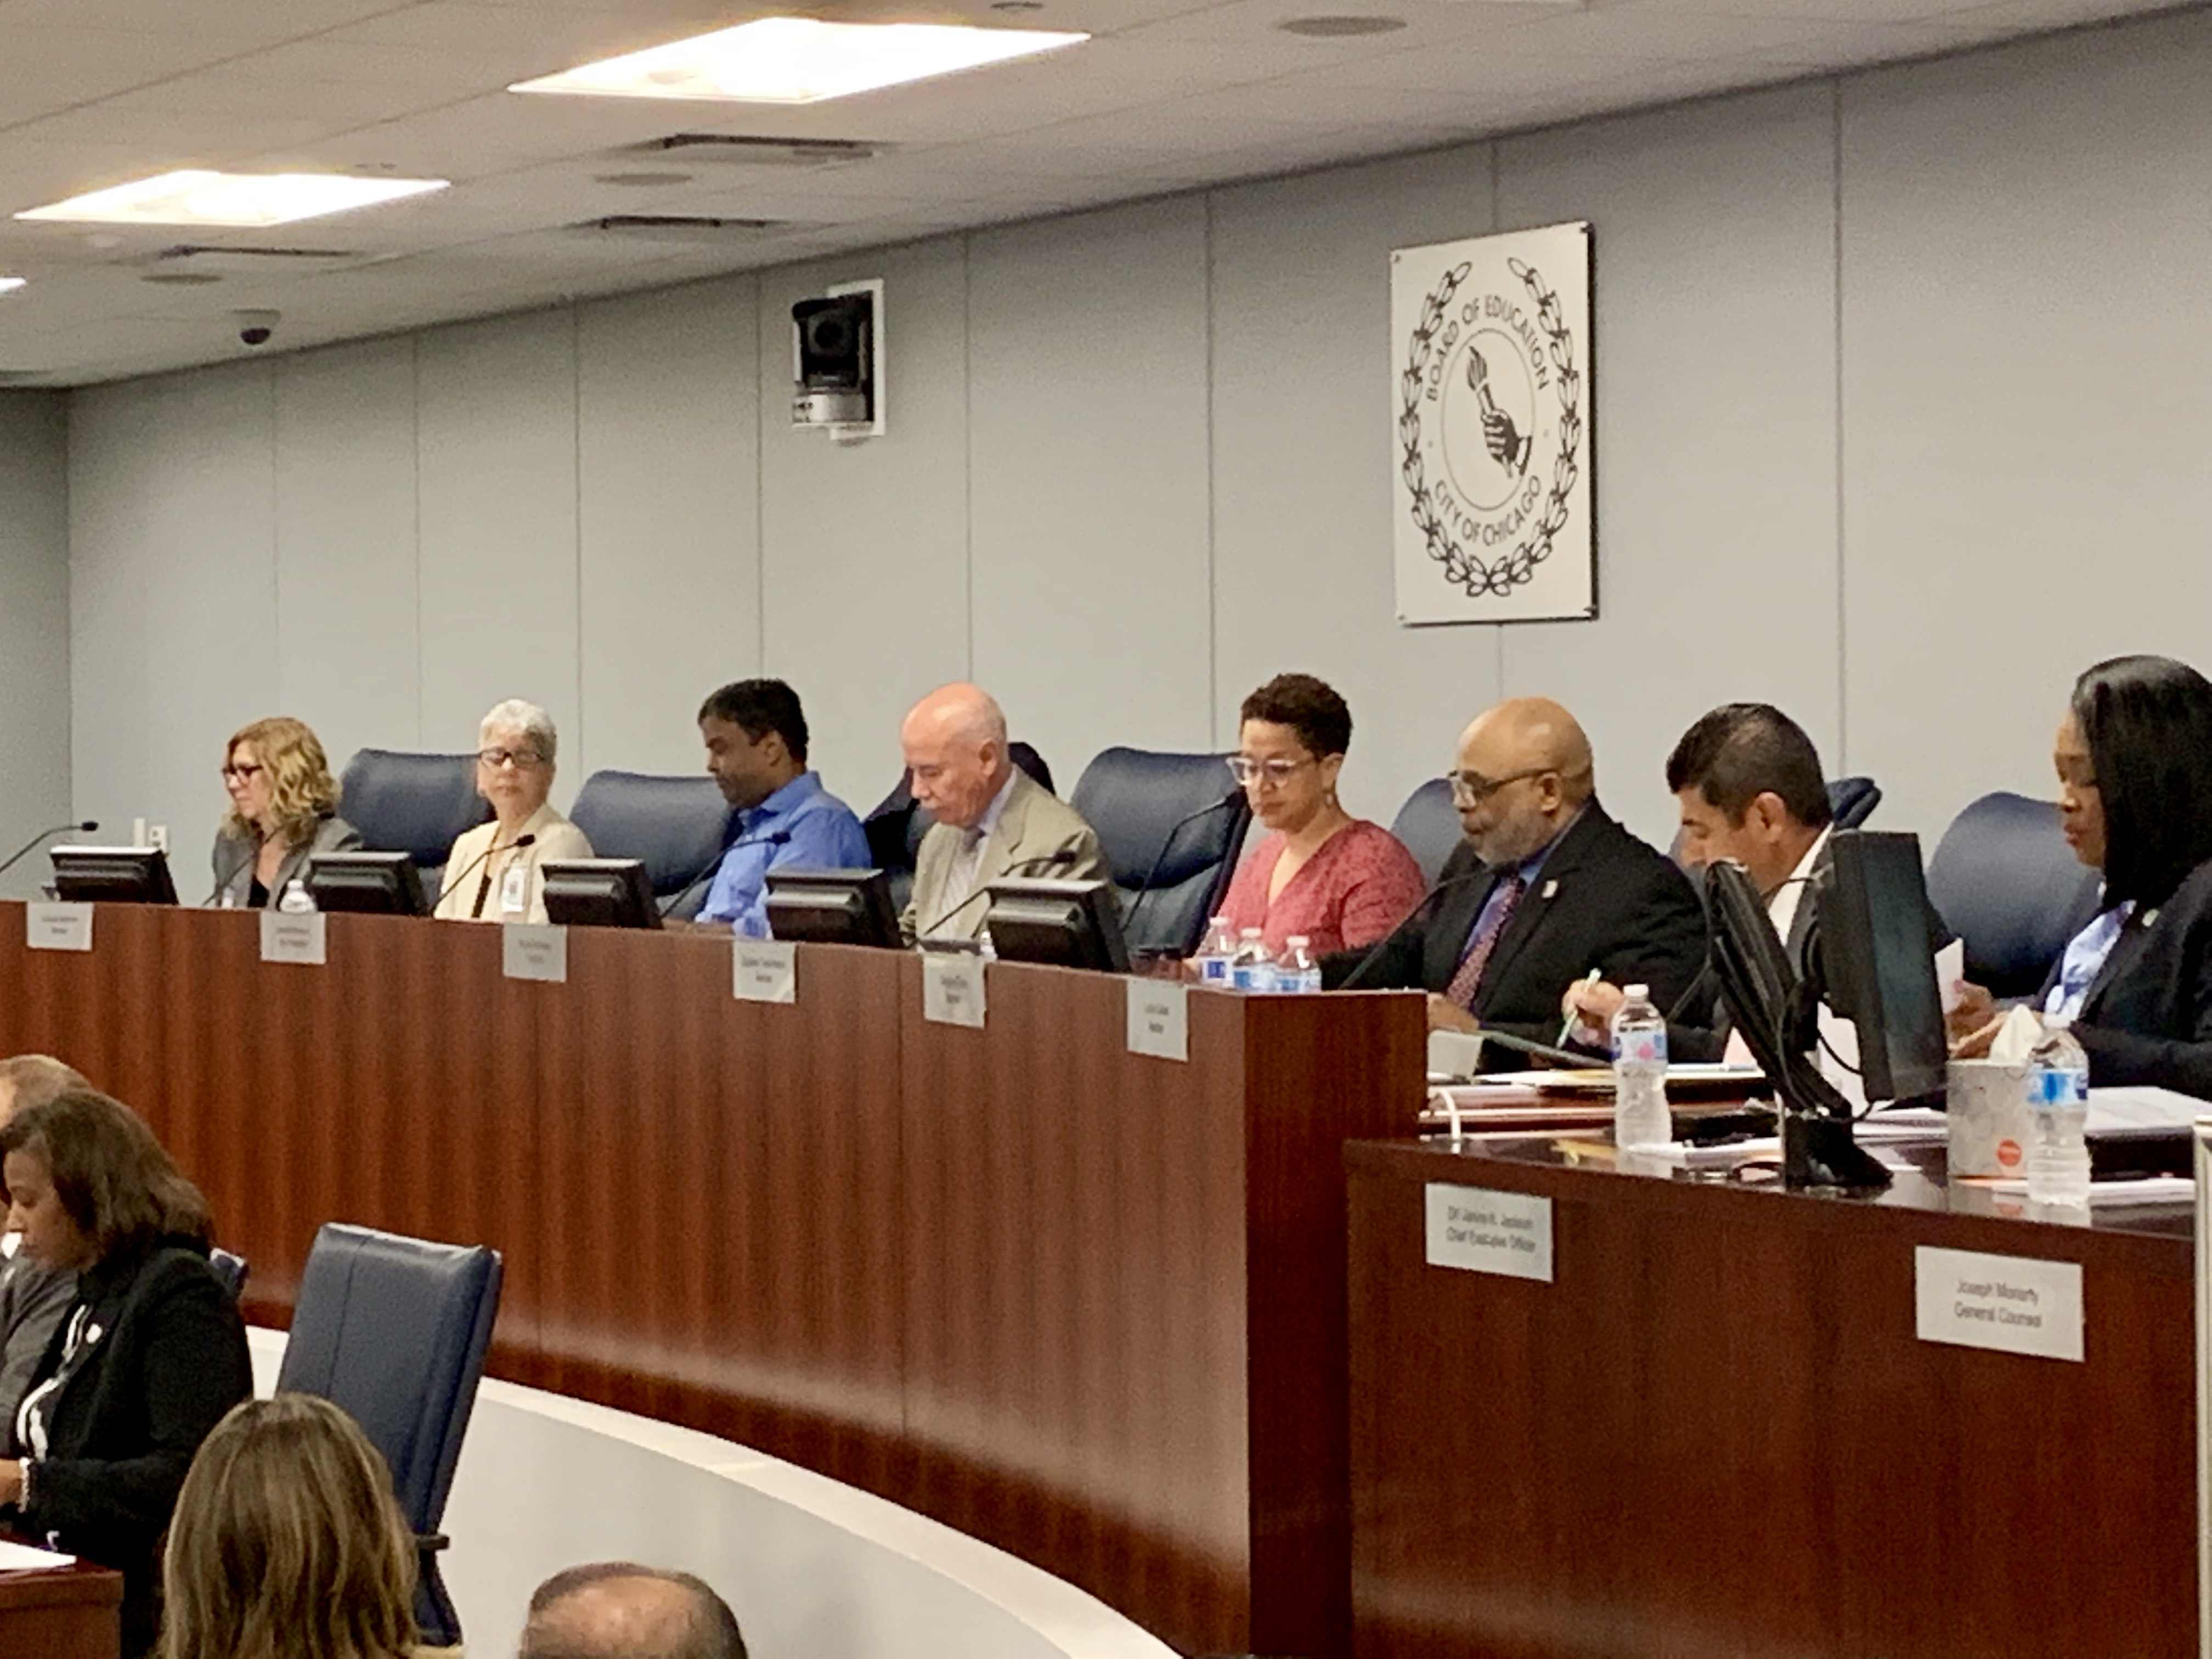 From left: New Chicago Board of Education Members Amy Rome, Luisiana Melendez, Sendhil Revuluri, Miguel del Valle, Elizabeth Todd-Breland, Dwayne Truss and Lucino Sotelo.